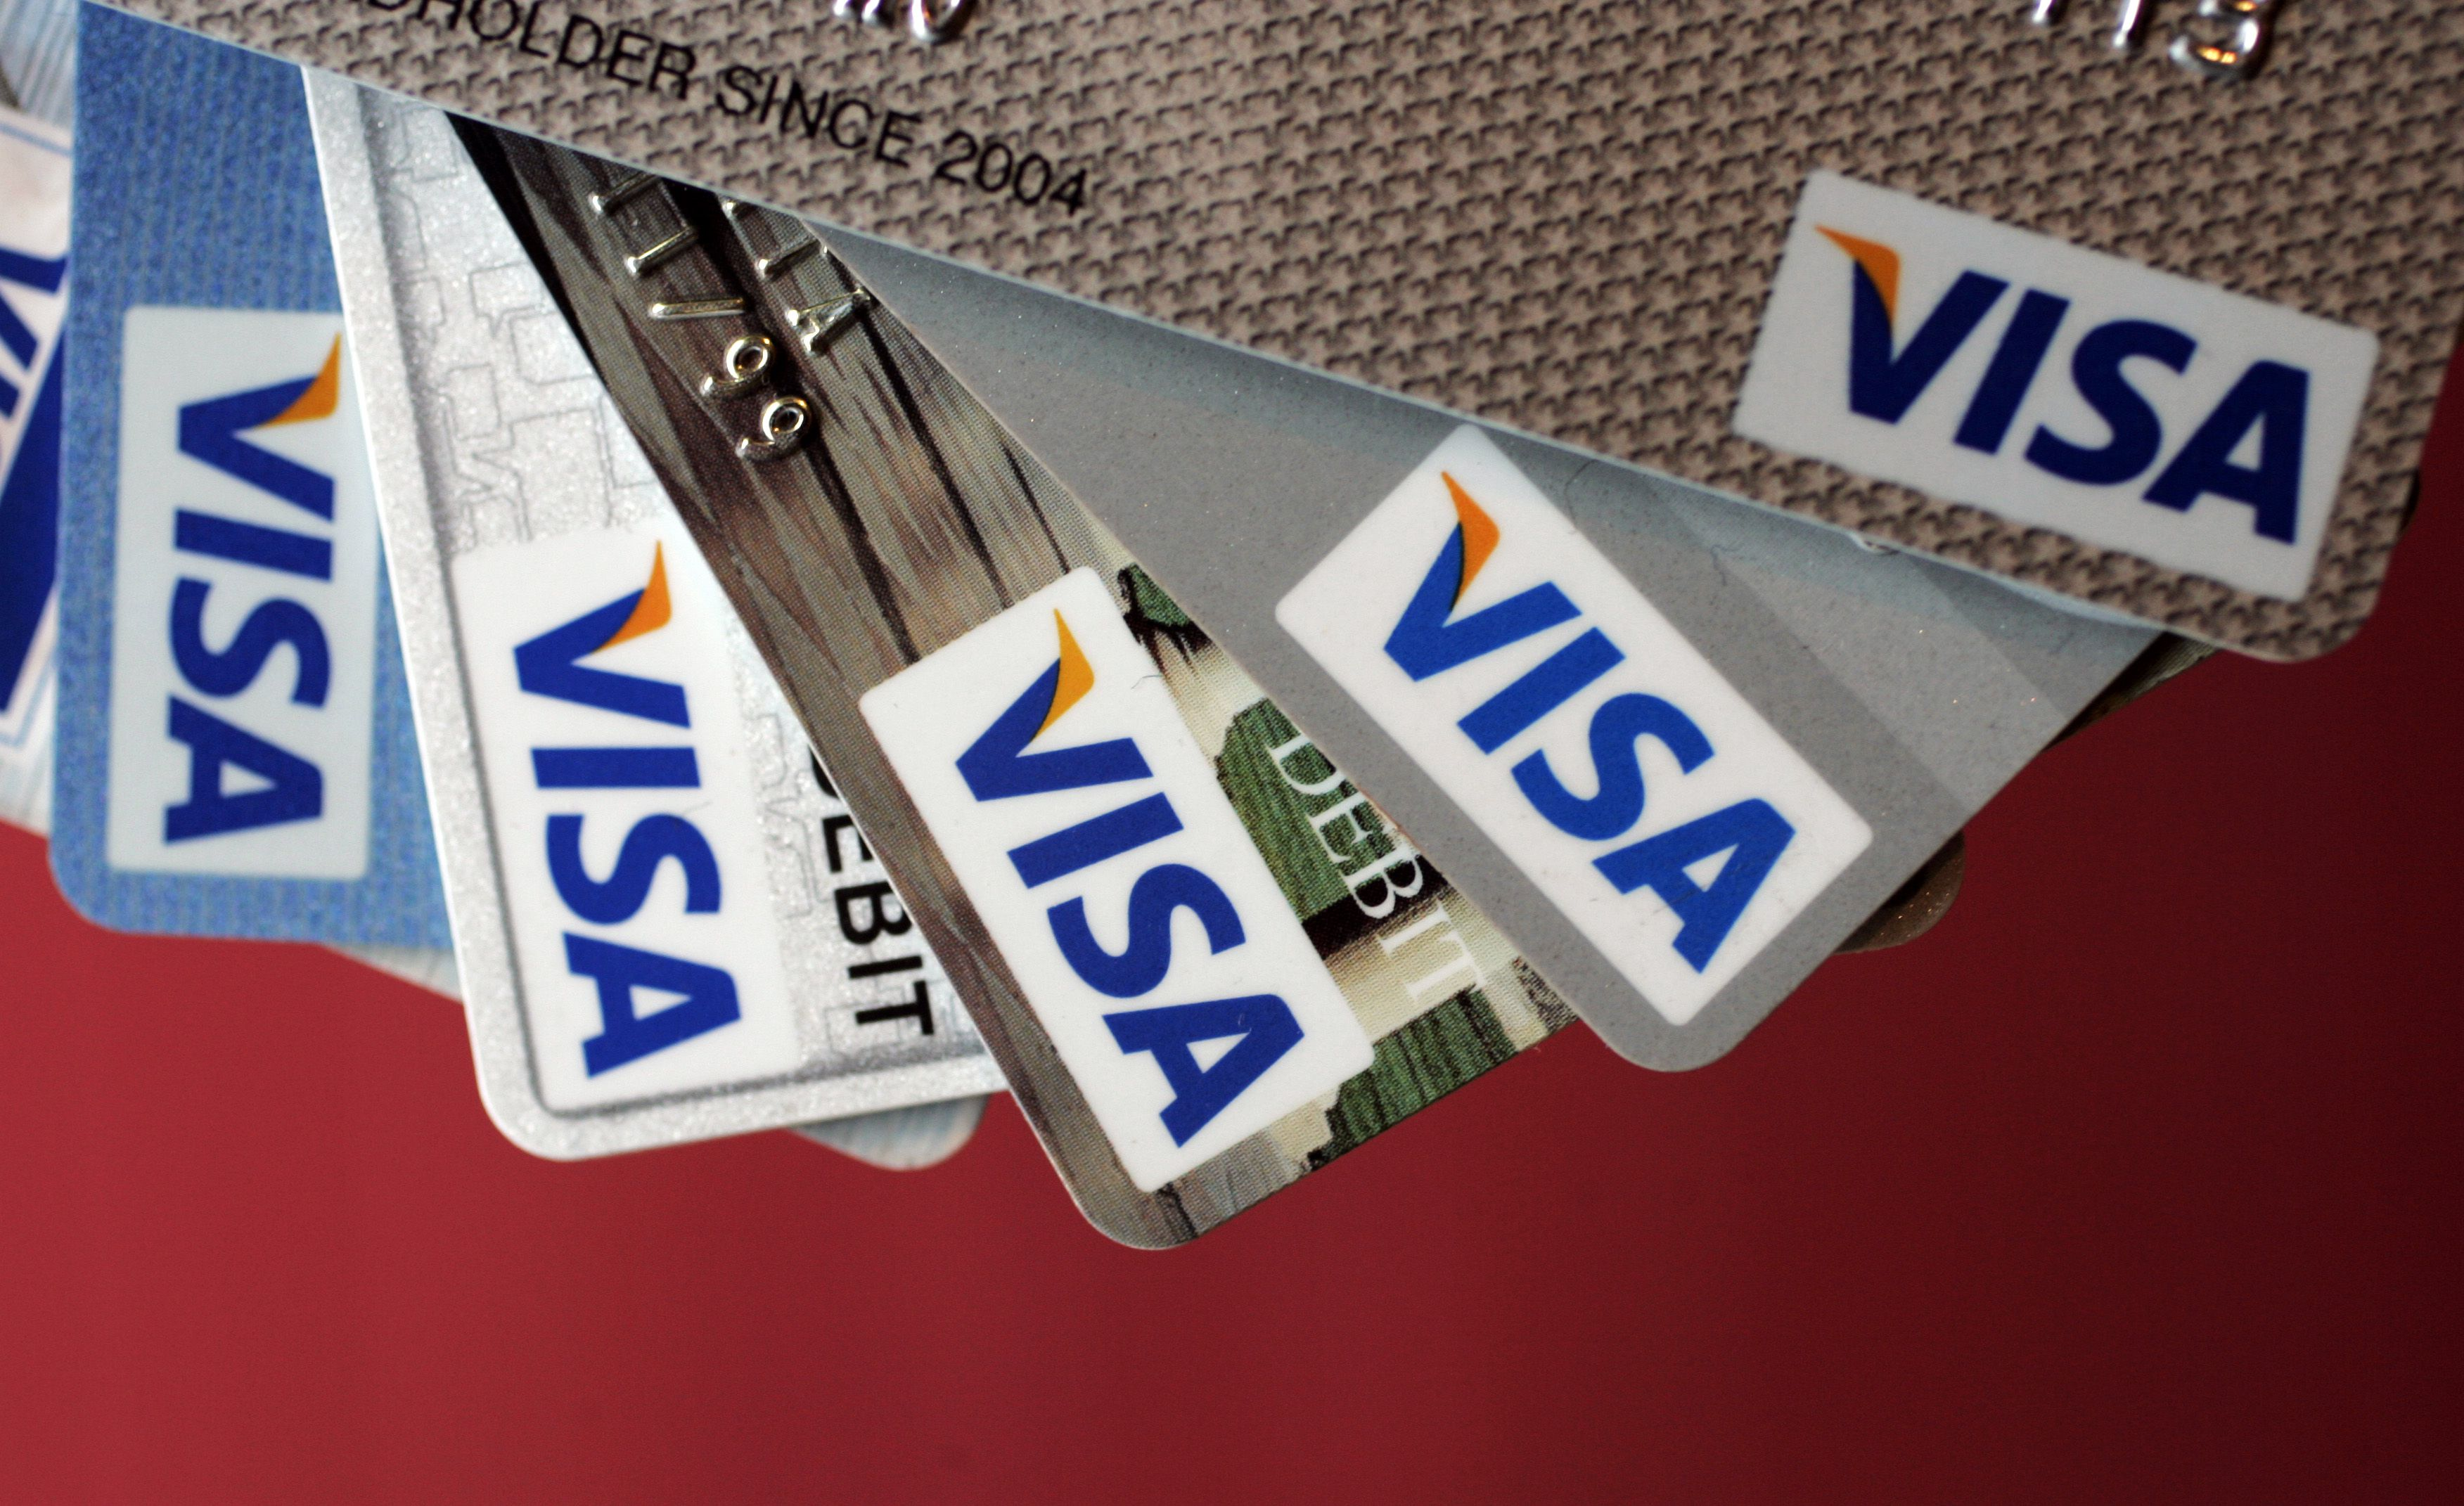 Visa Earnings: What Happened With V